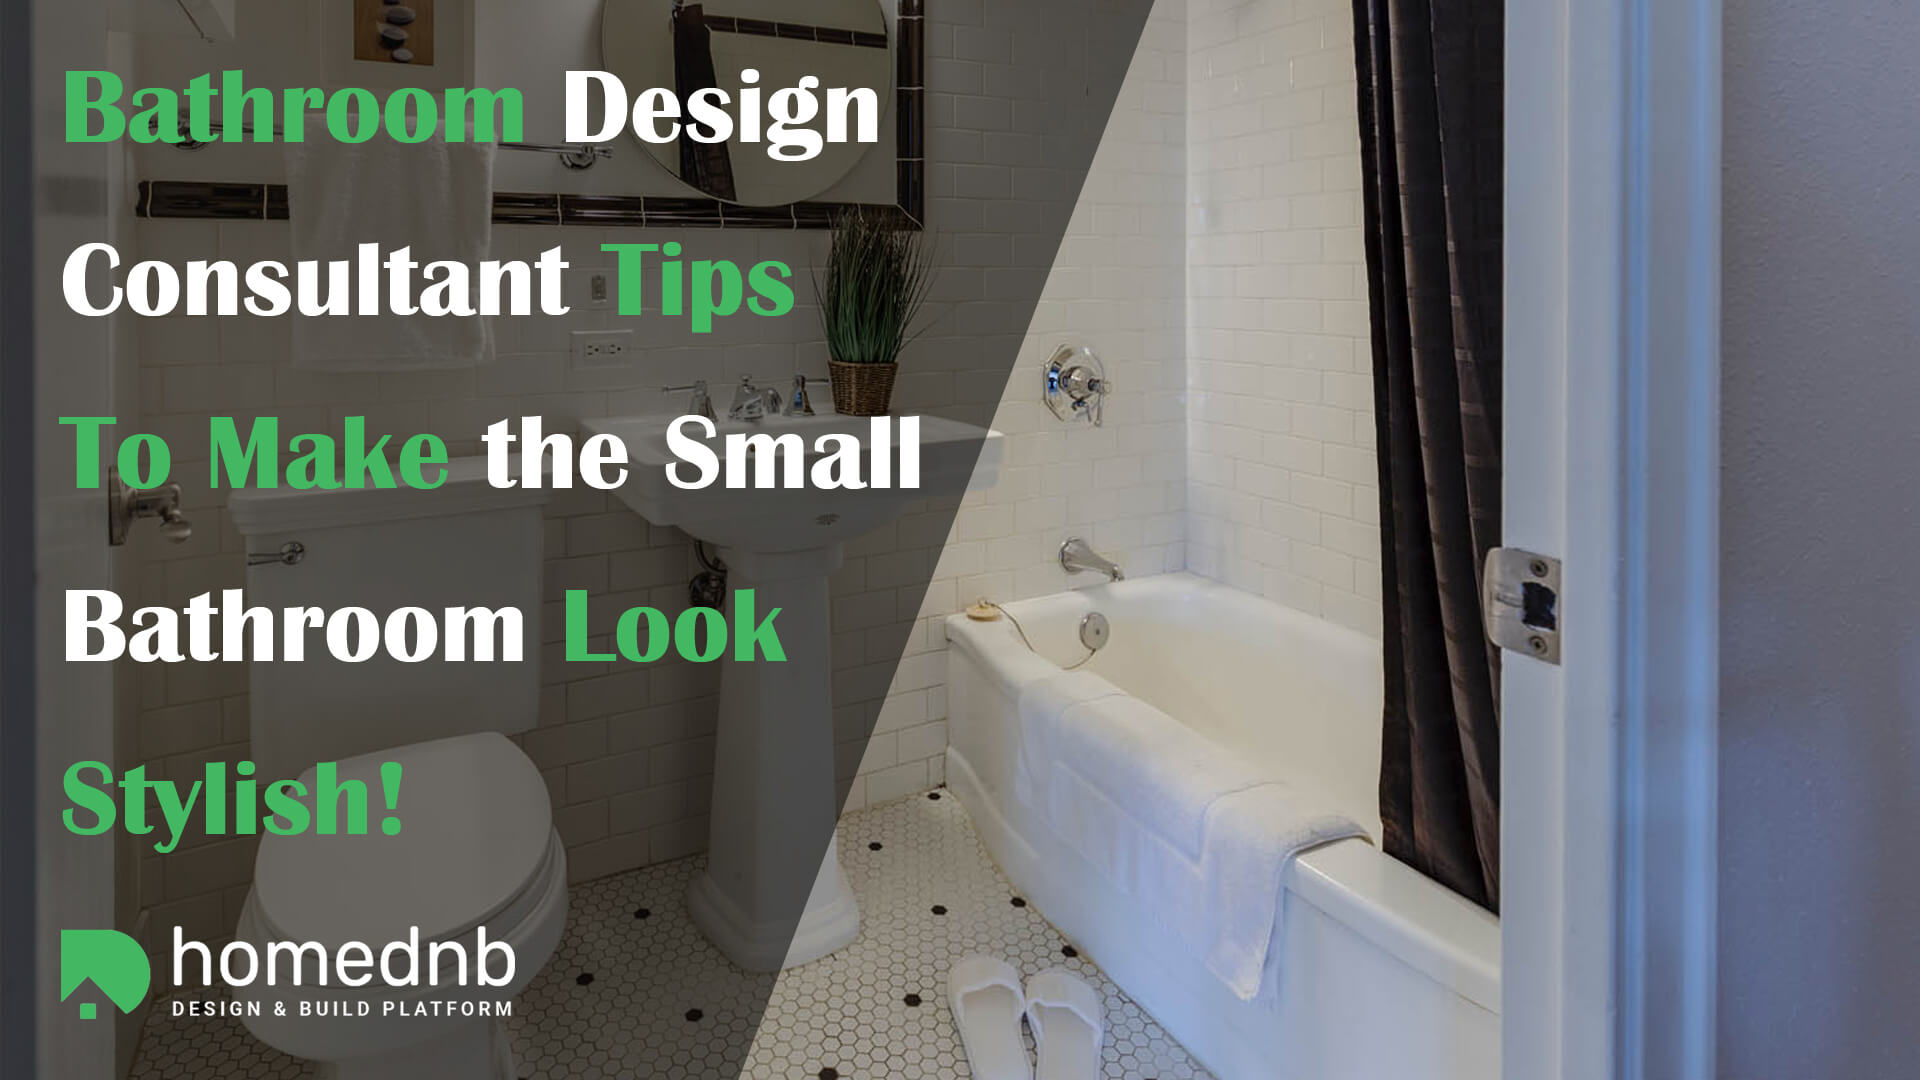 Bathroom Design Consultant Tips To Make the Small Bathroom Look Stylish!